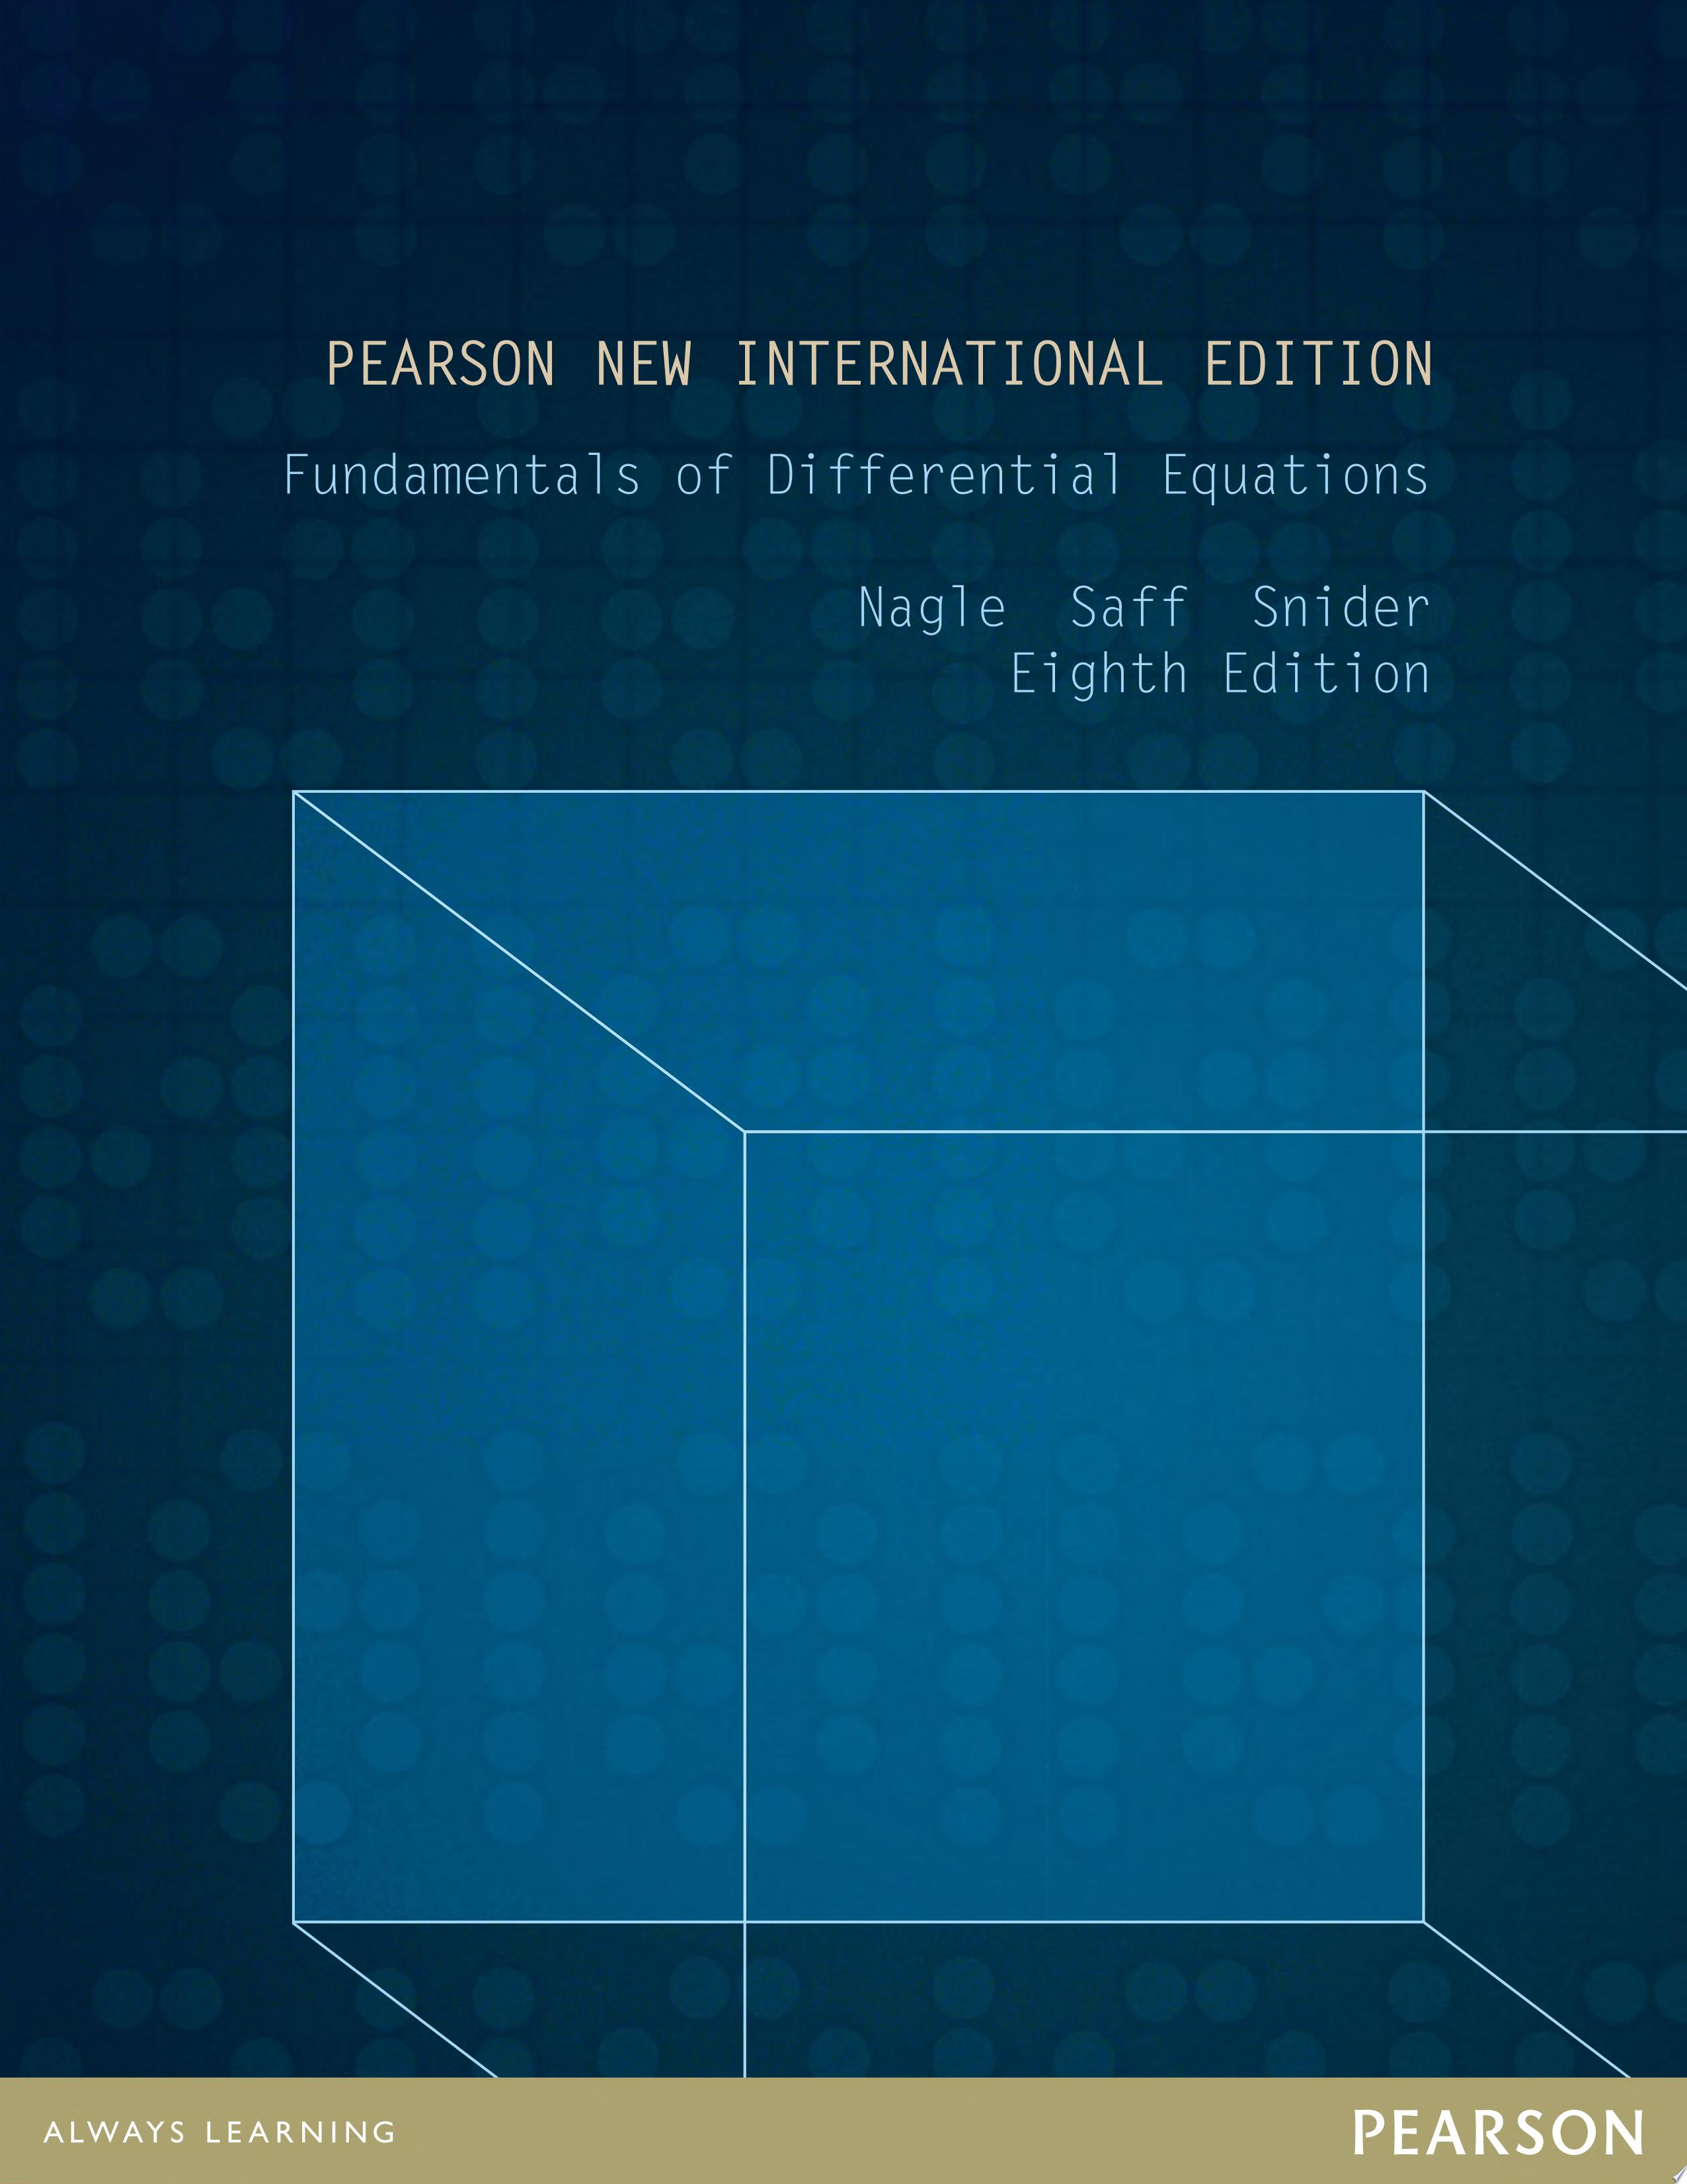 Fundamentals of Differential Equations  Pearson New International EditionEdition